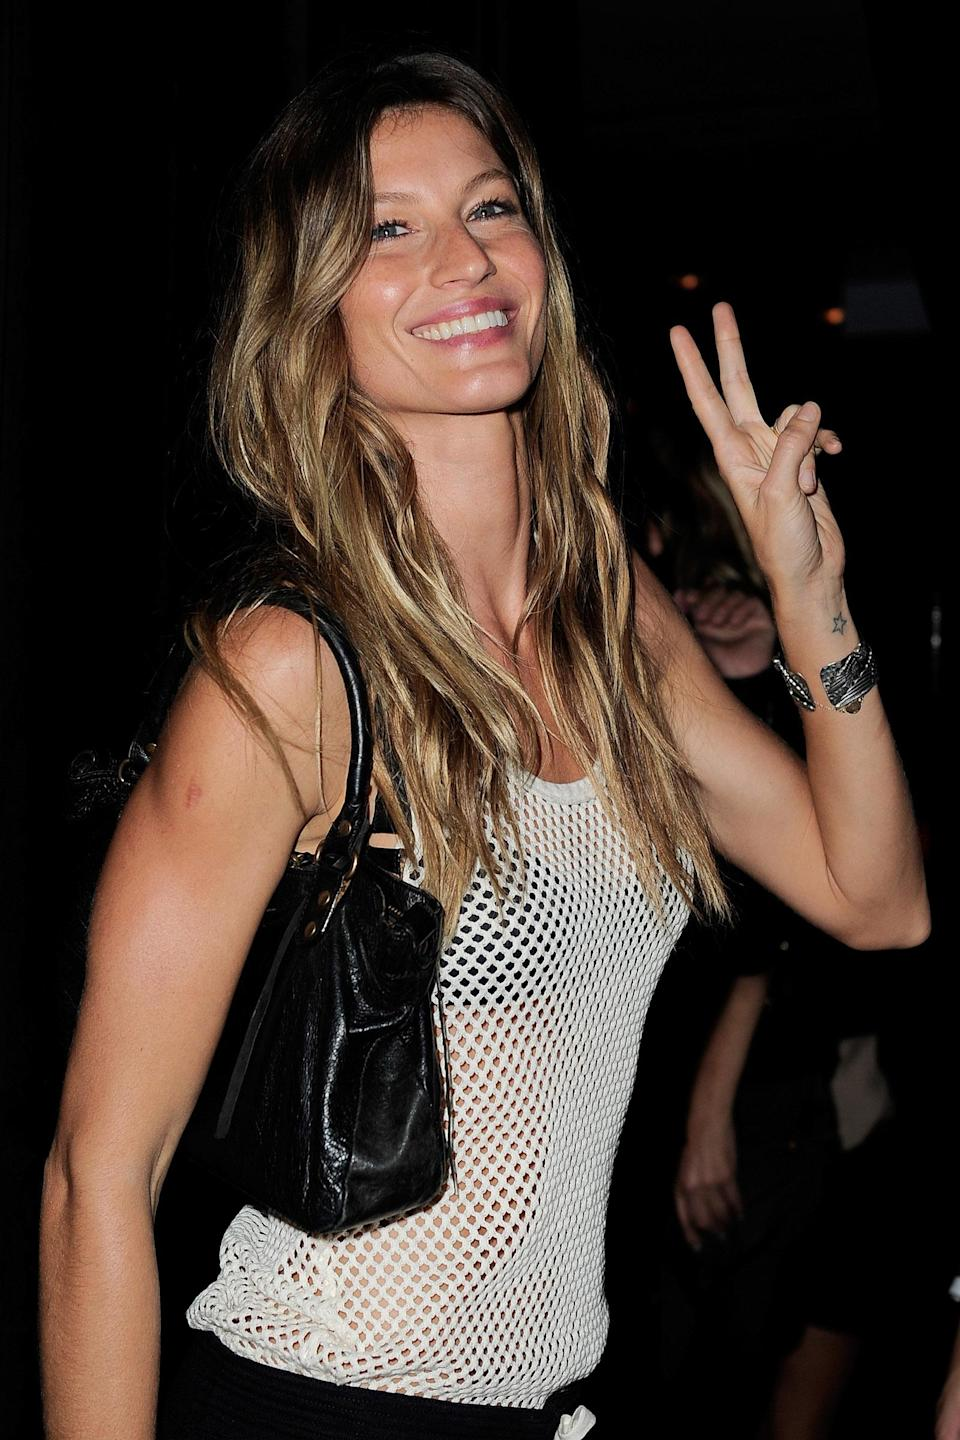 <p>The Brazilian beauty flashed a smile and a peace sign while heading into a Givency event in Paris. (Photo: Getty Images) </p>